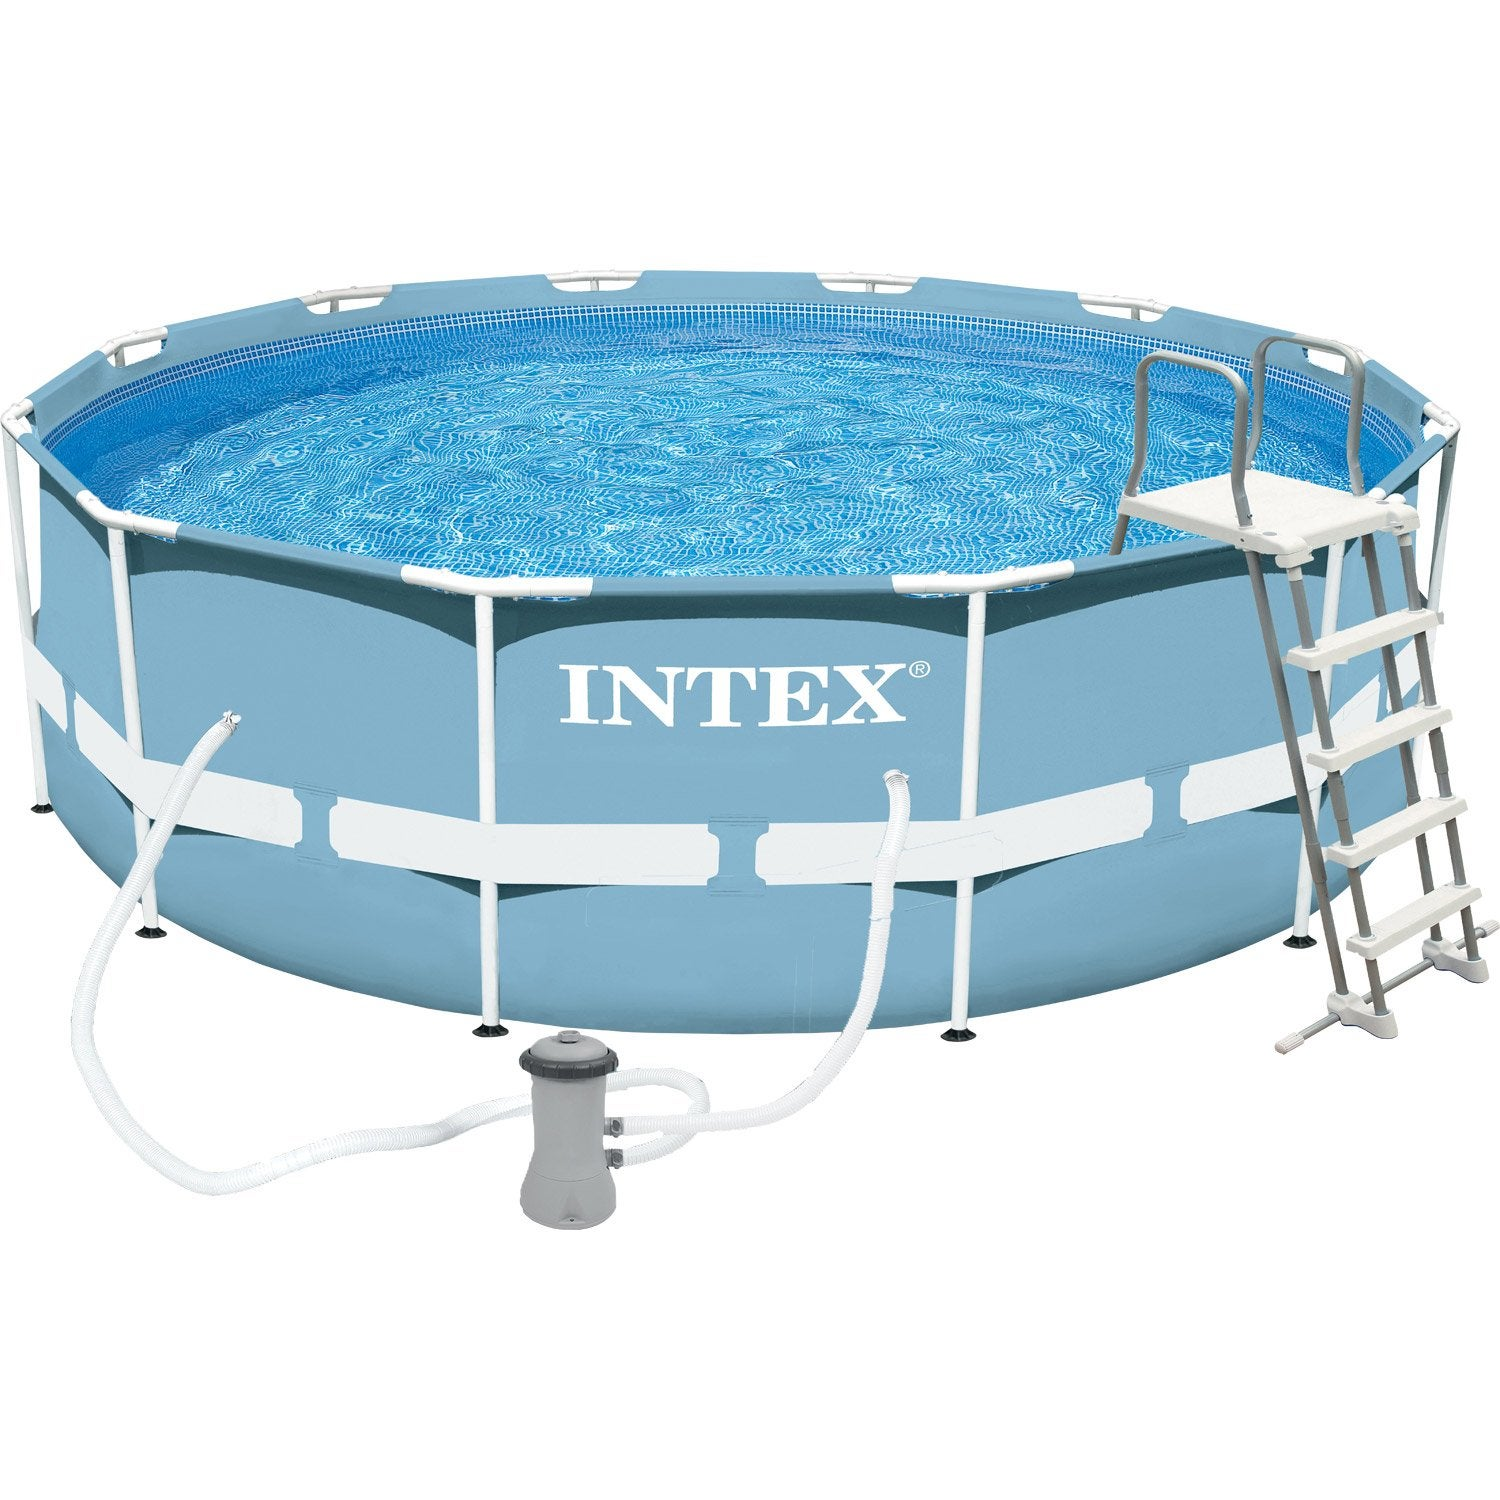 Piscine hors sol autoportante tubulaire prism frame intex for Rustine pour piscine intex